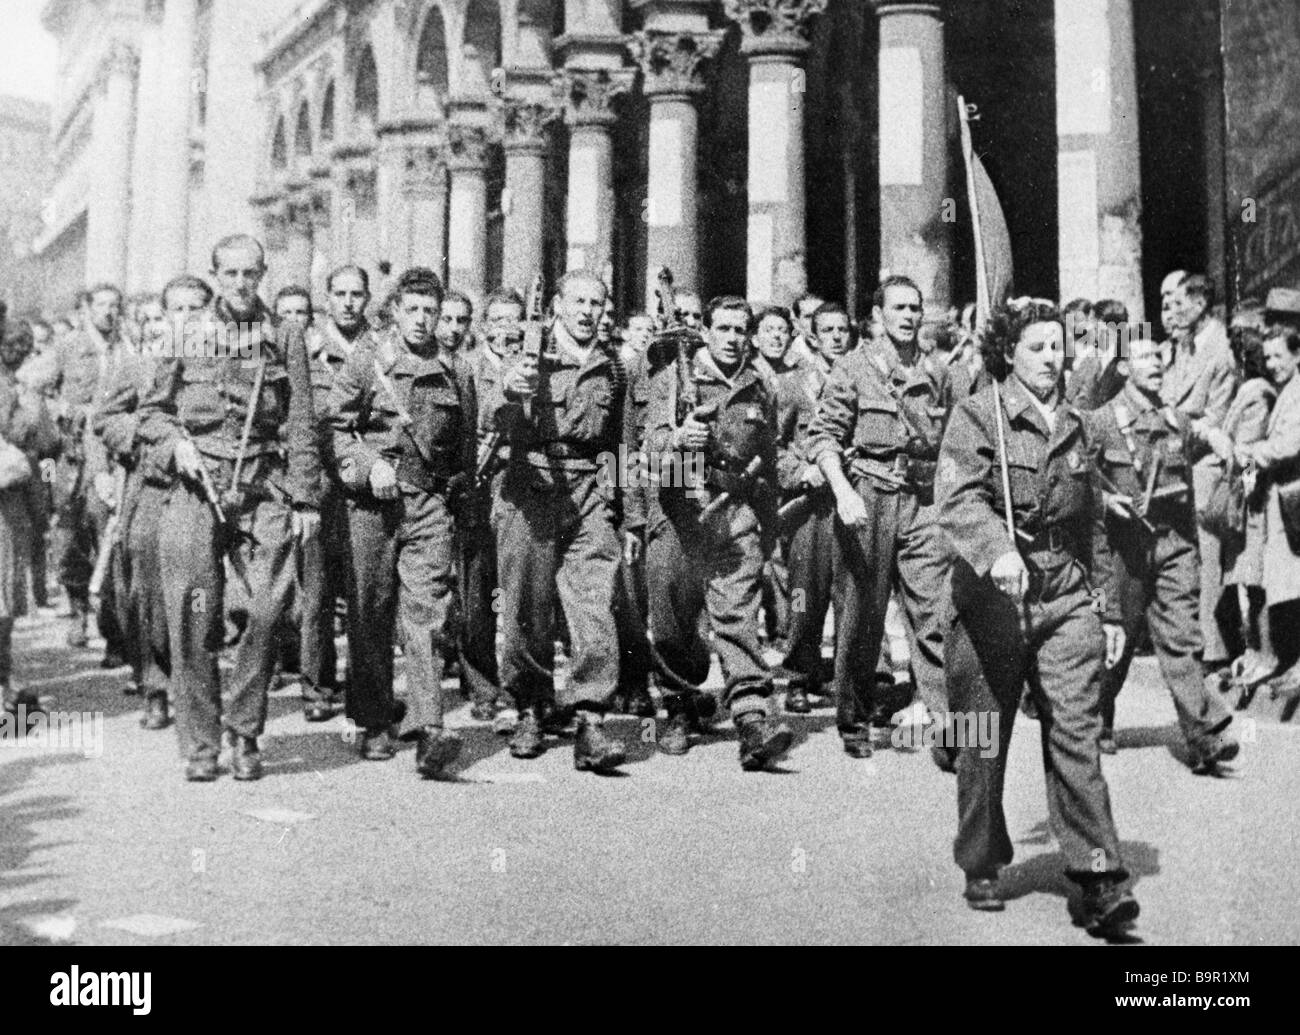 Armed group of the Resistance movement walking along a Milan street during WWII Stock Photo